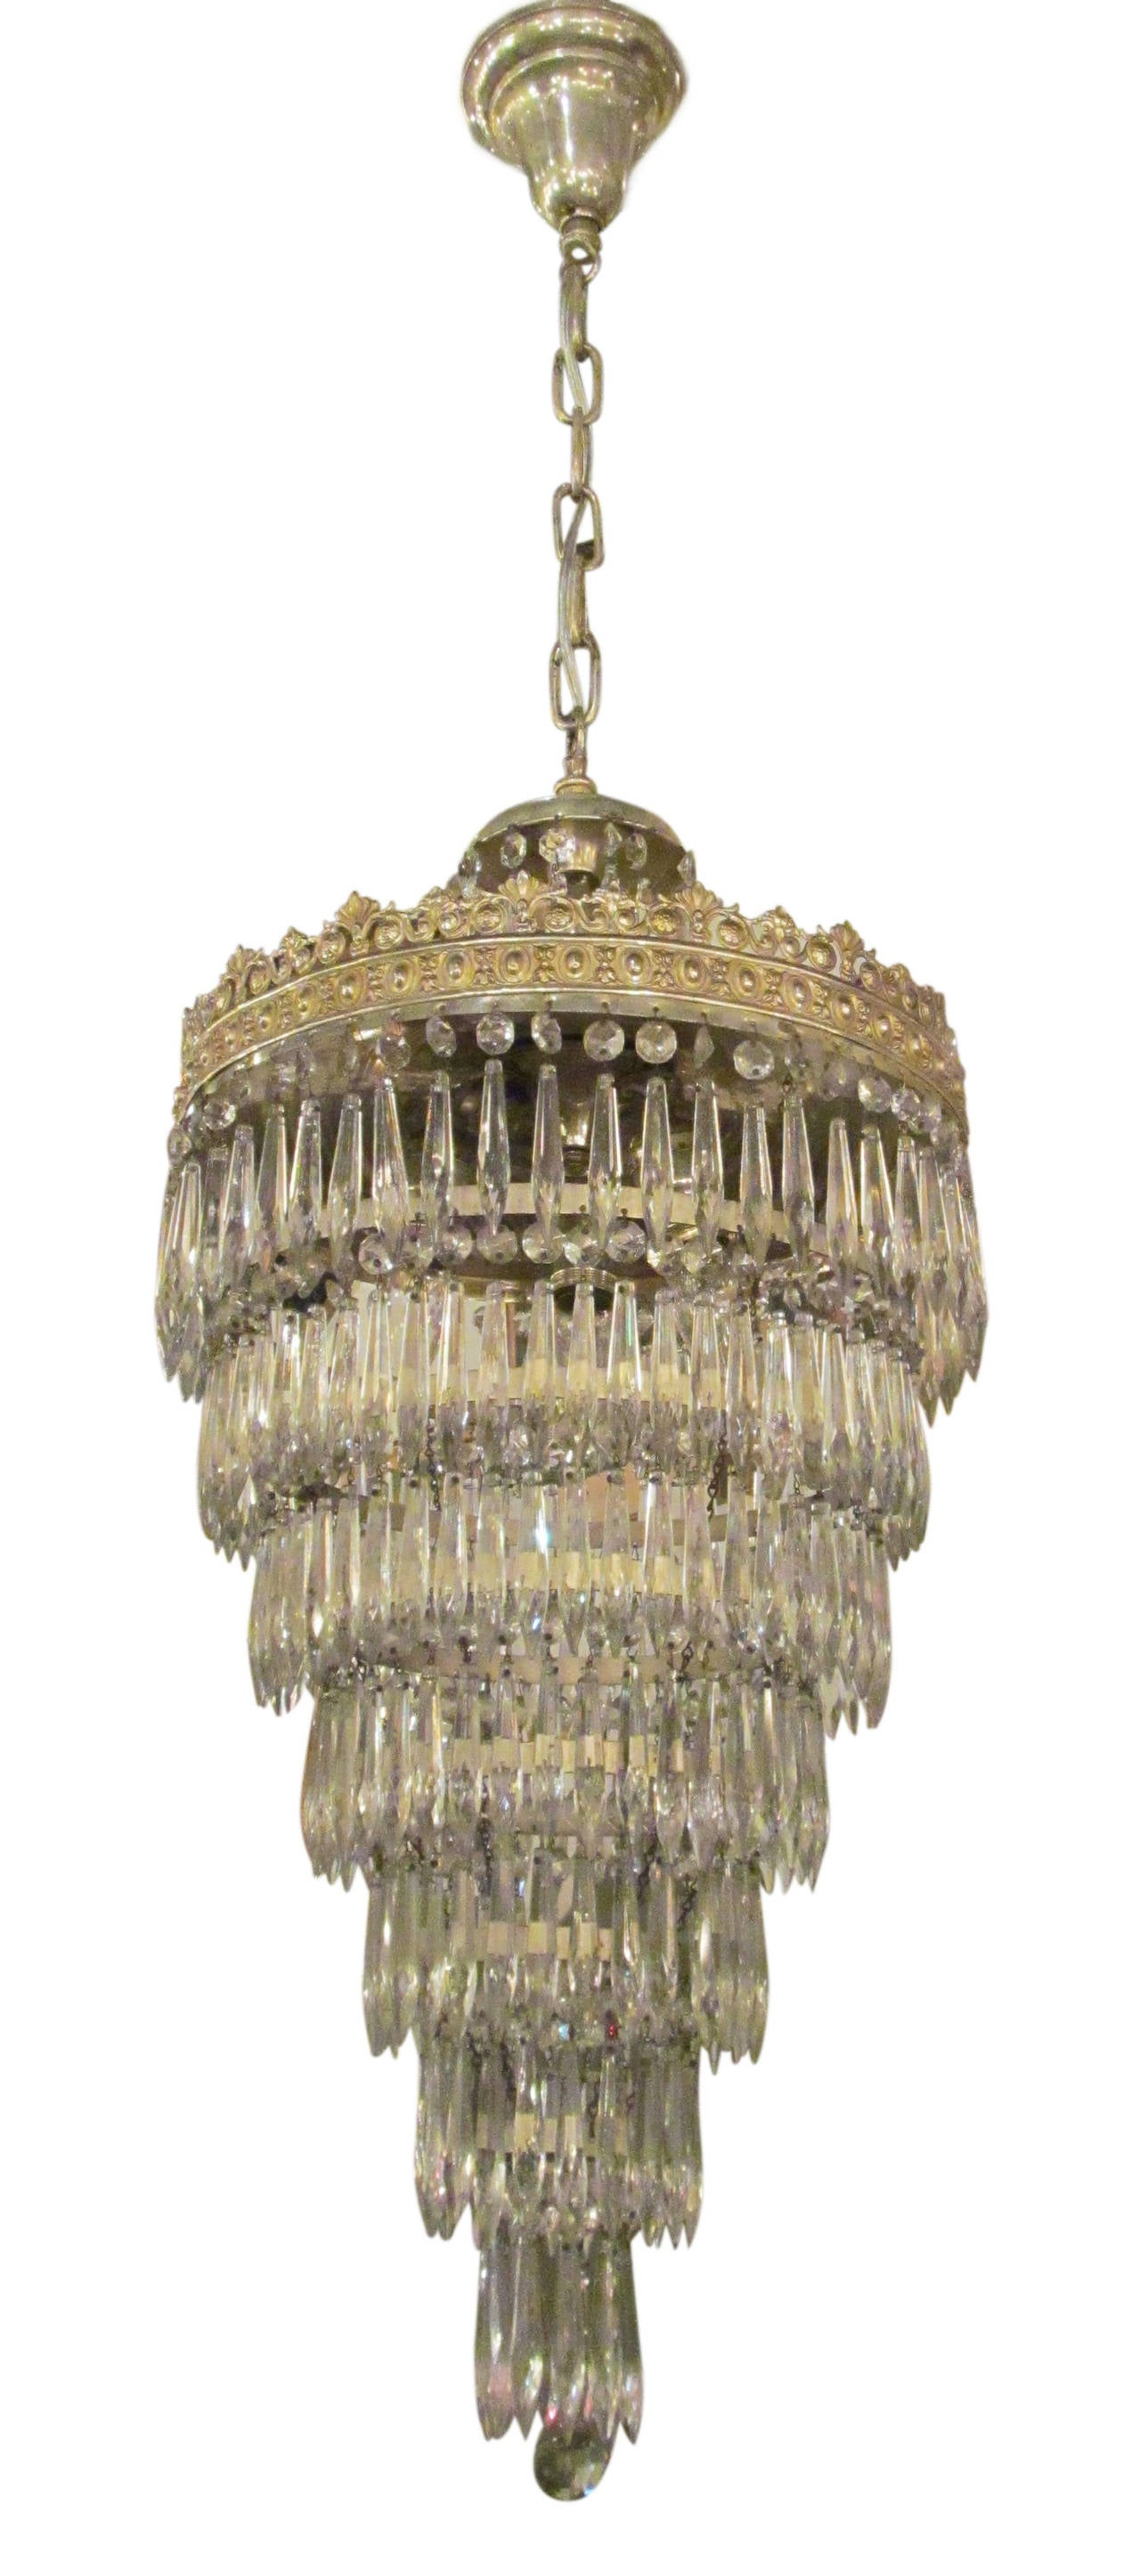 1930s Silver Plated Wedding Cake Chandelier at 1stdibs